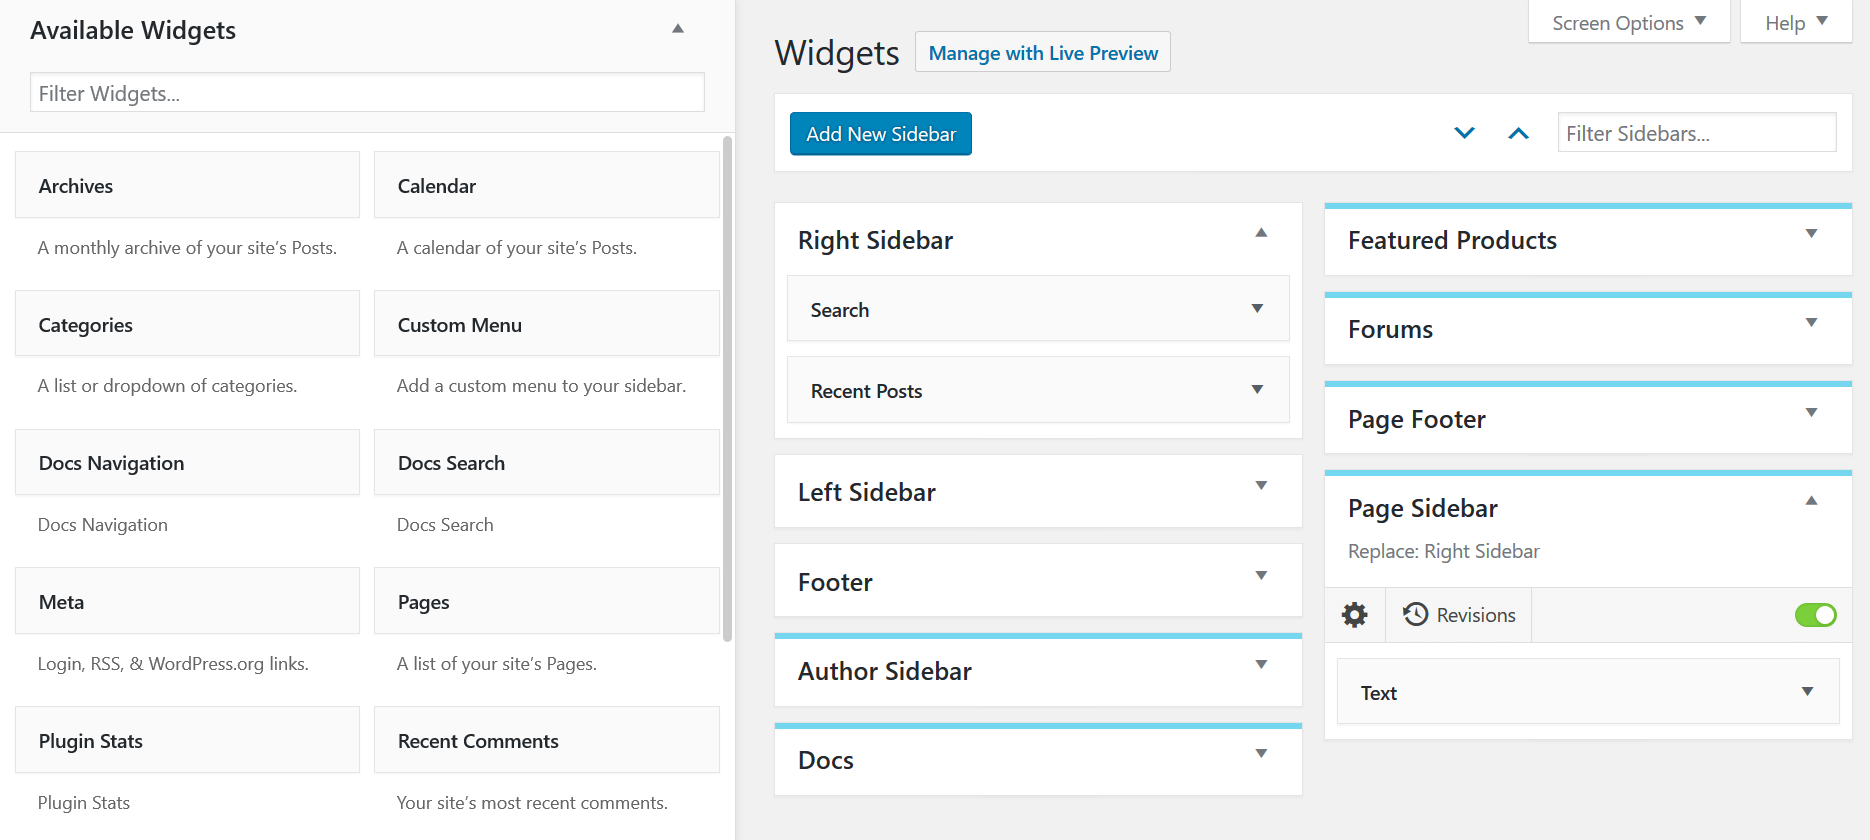 Filter widgets and sidebars in the Enhanced Widget Manager